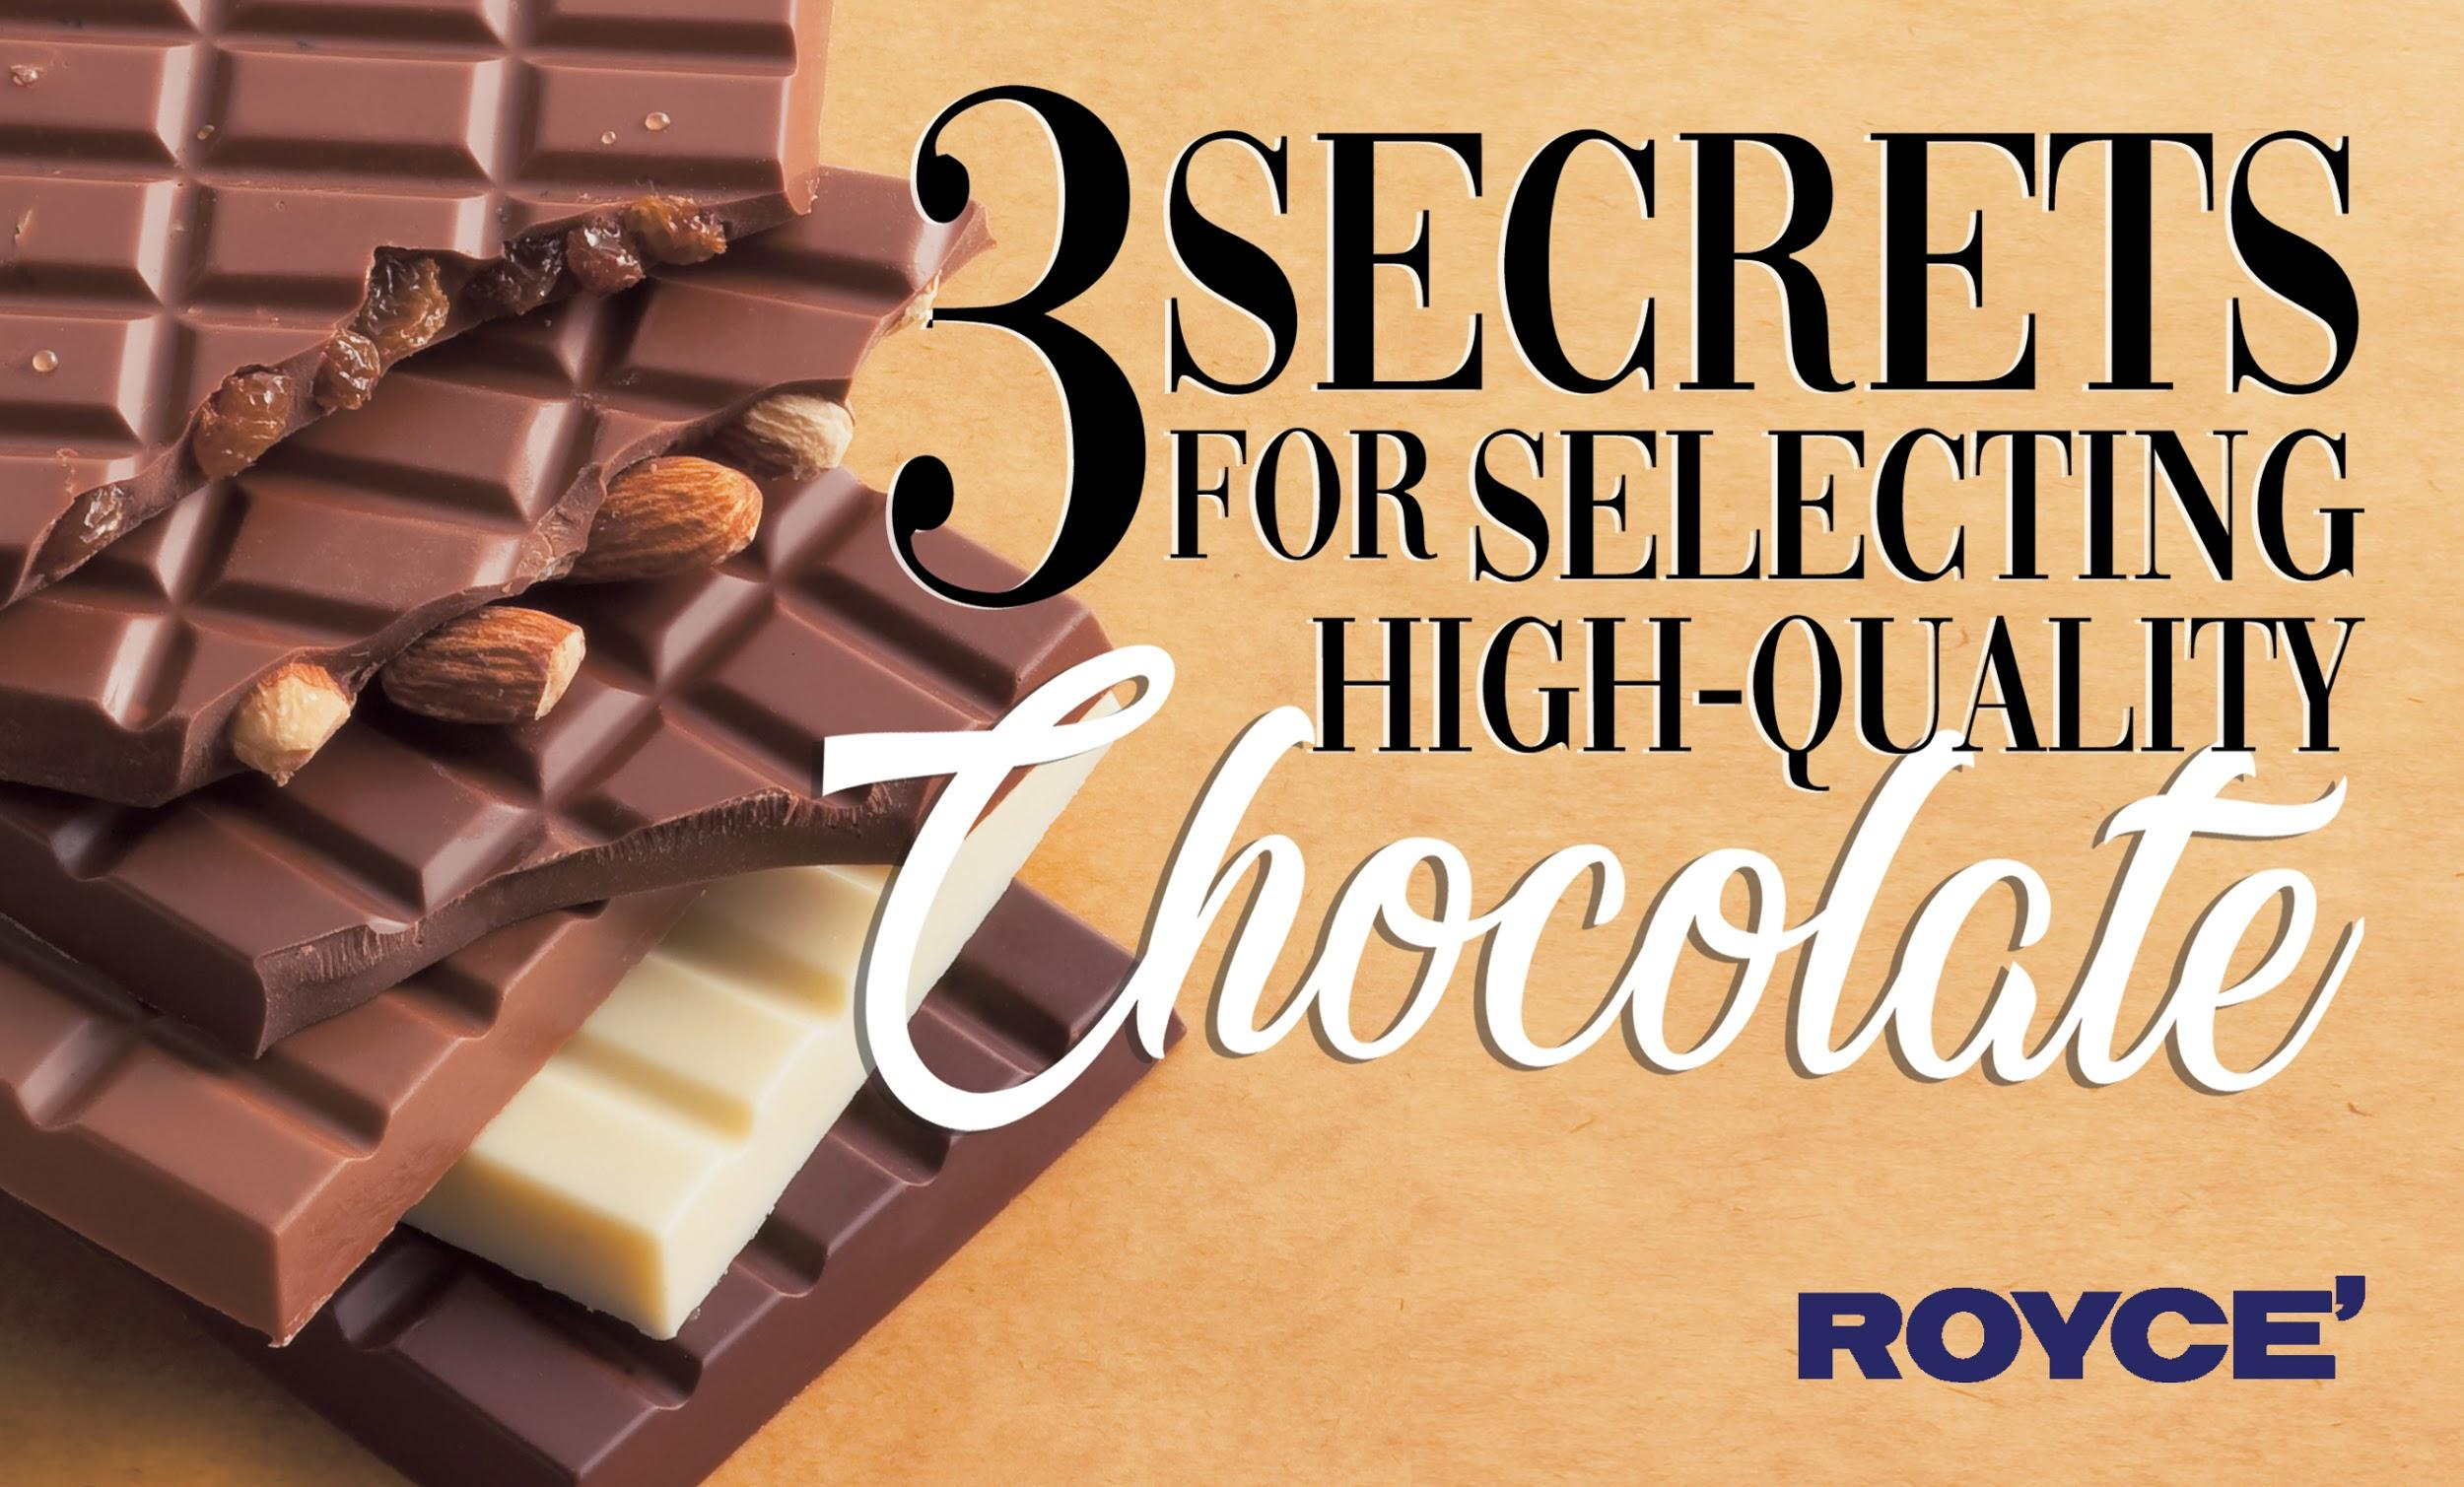 3 Secrets for Selecting High-Quality Chocolate